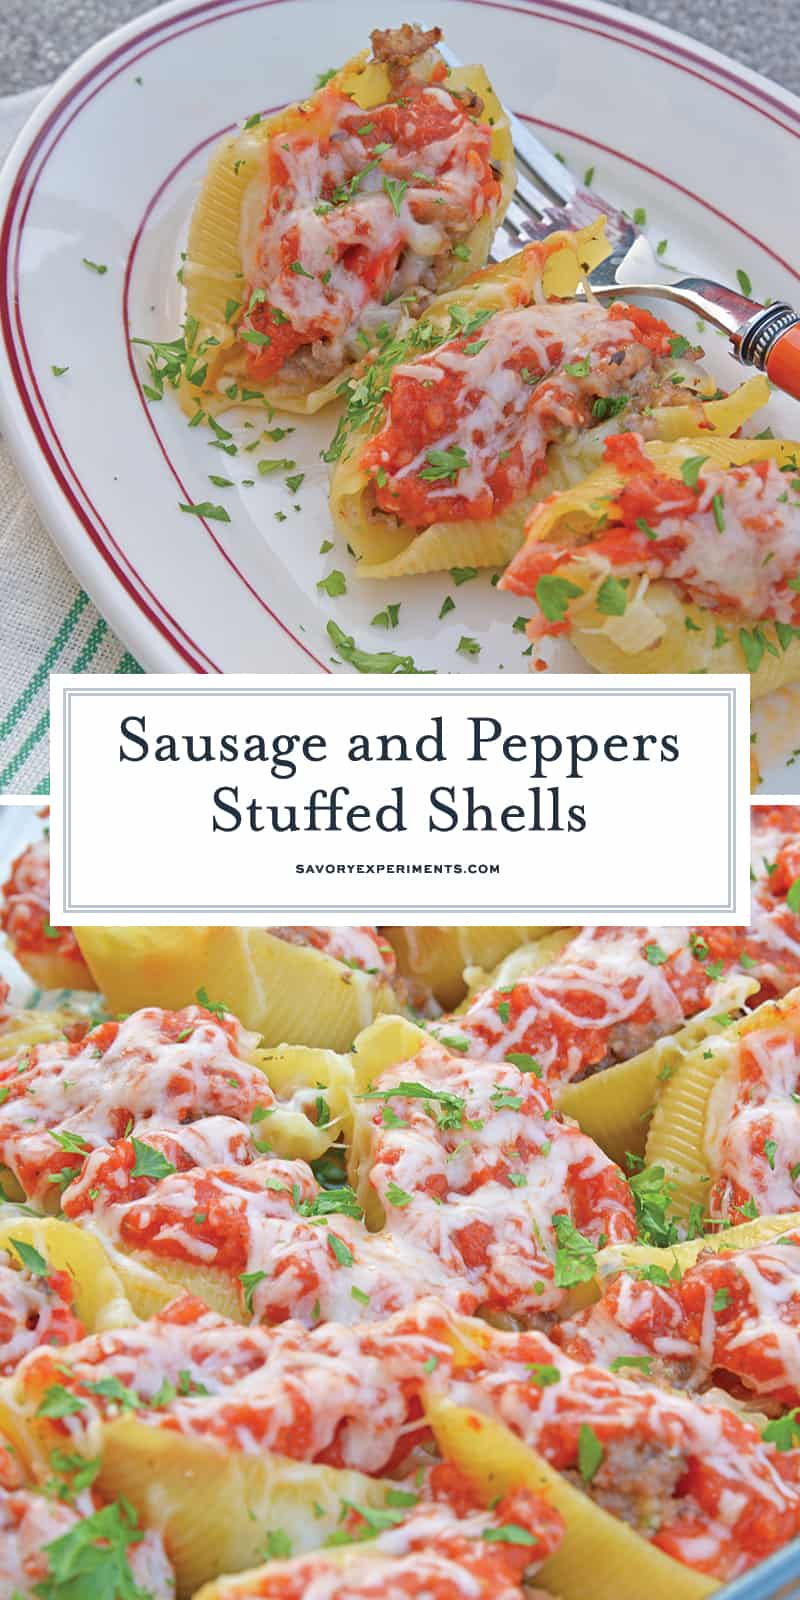 These Sausage and Peppers Stuffed Shells are a mashup of two fan favorites and are a fun way to spice up any weekday meal. They are guaranteed to wow! #sausageandpeppersstuffedshells #sausageandpeppers #stuffedshells www.savoryexperiments.com